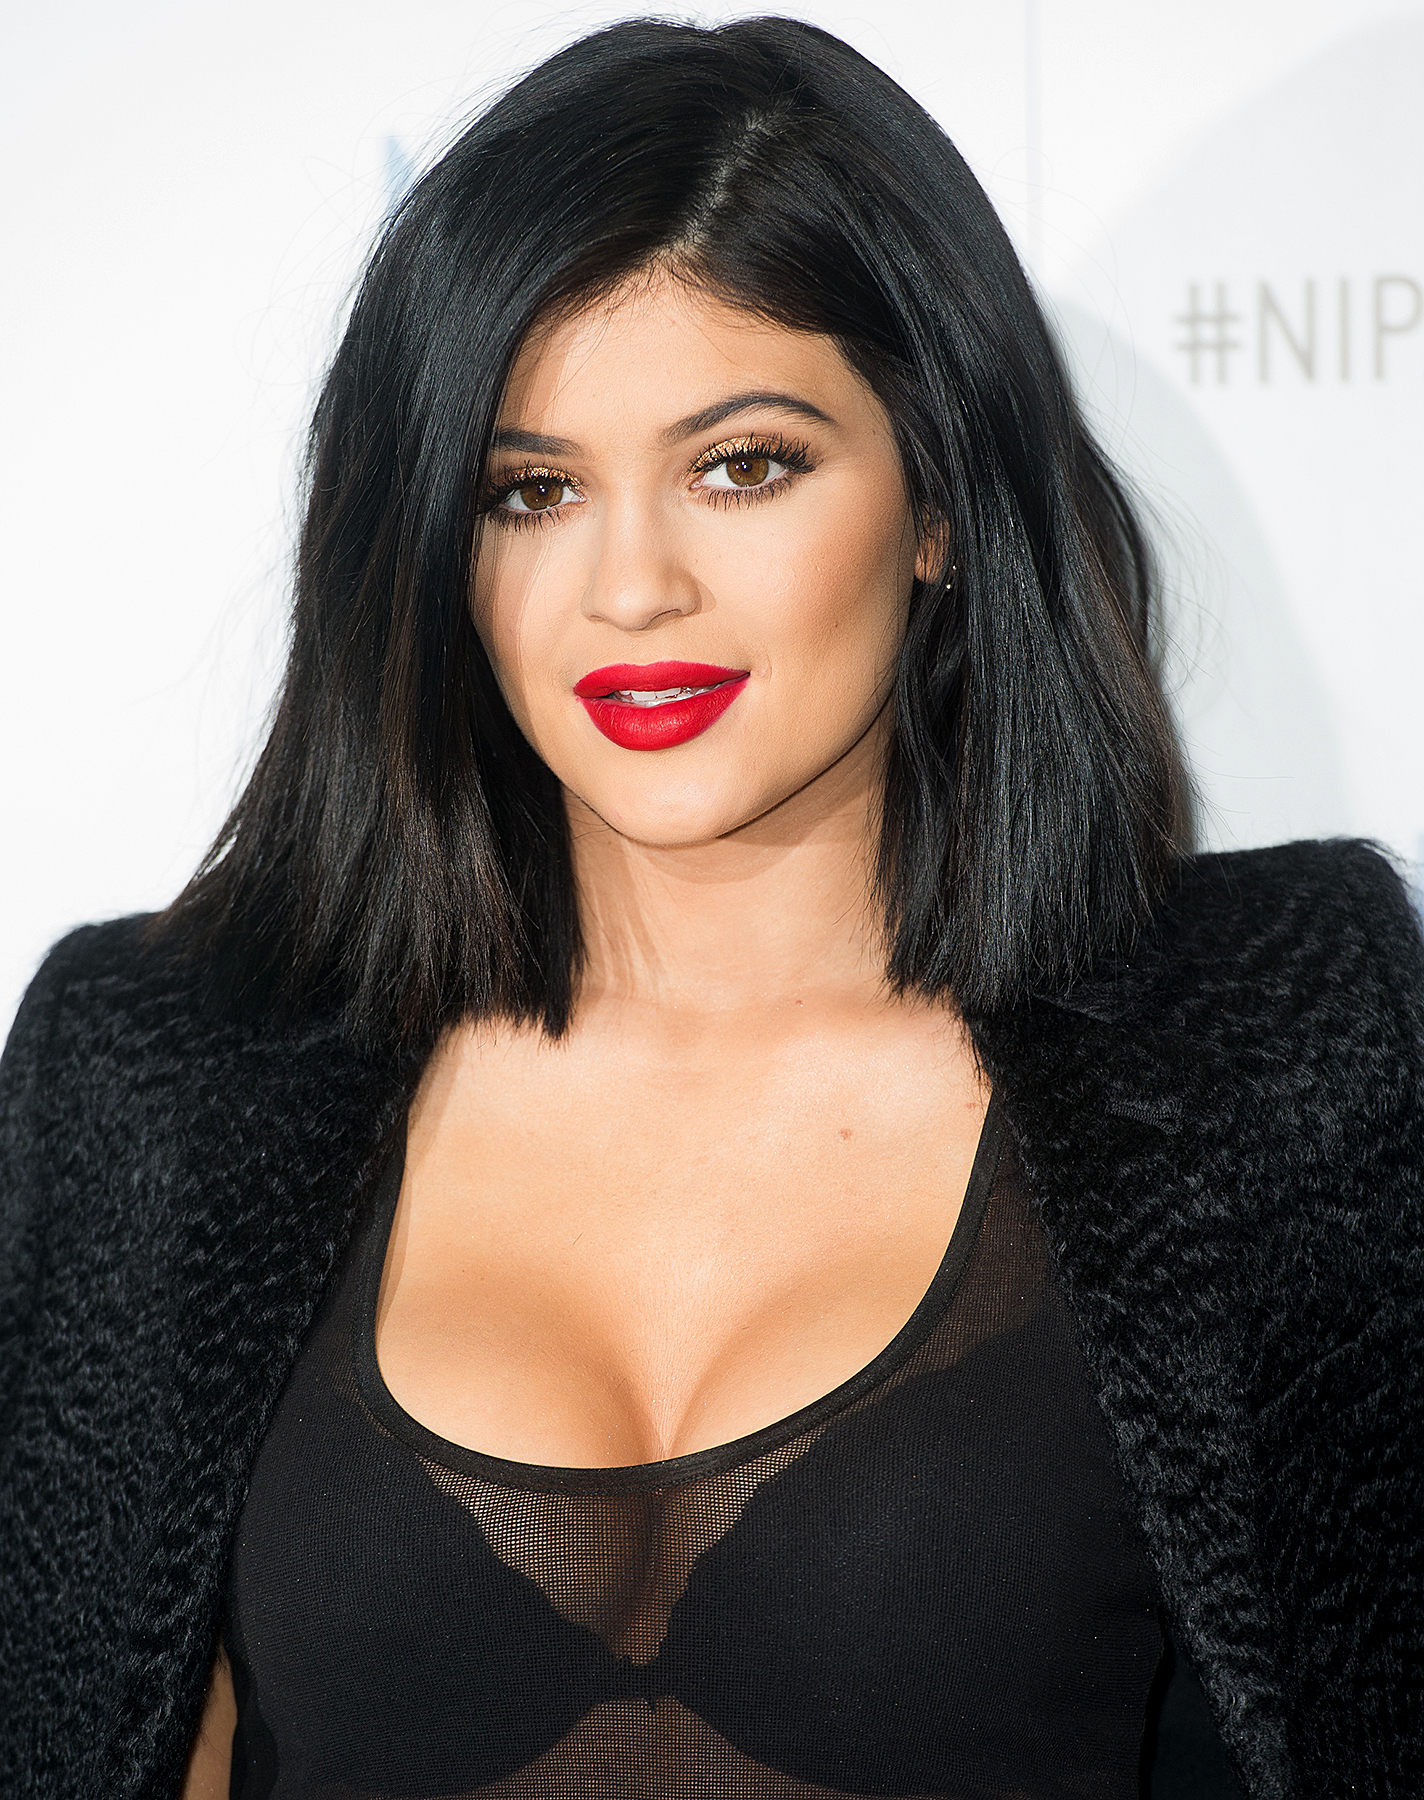 Kylie Jenner's Kylie Cosmetics Launches Valentine's Day Makeup Collection